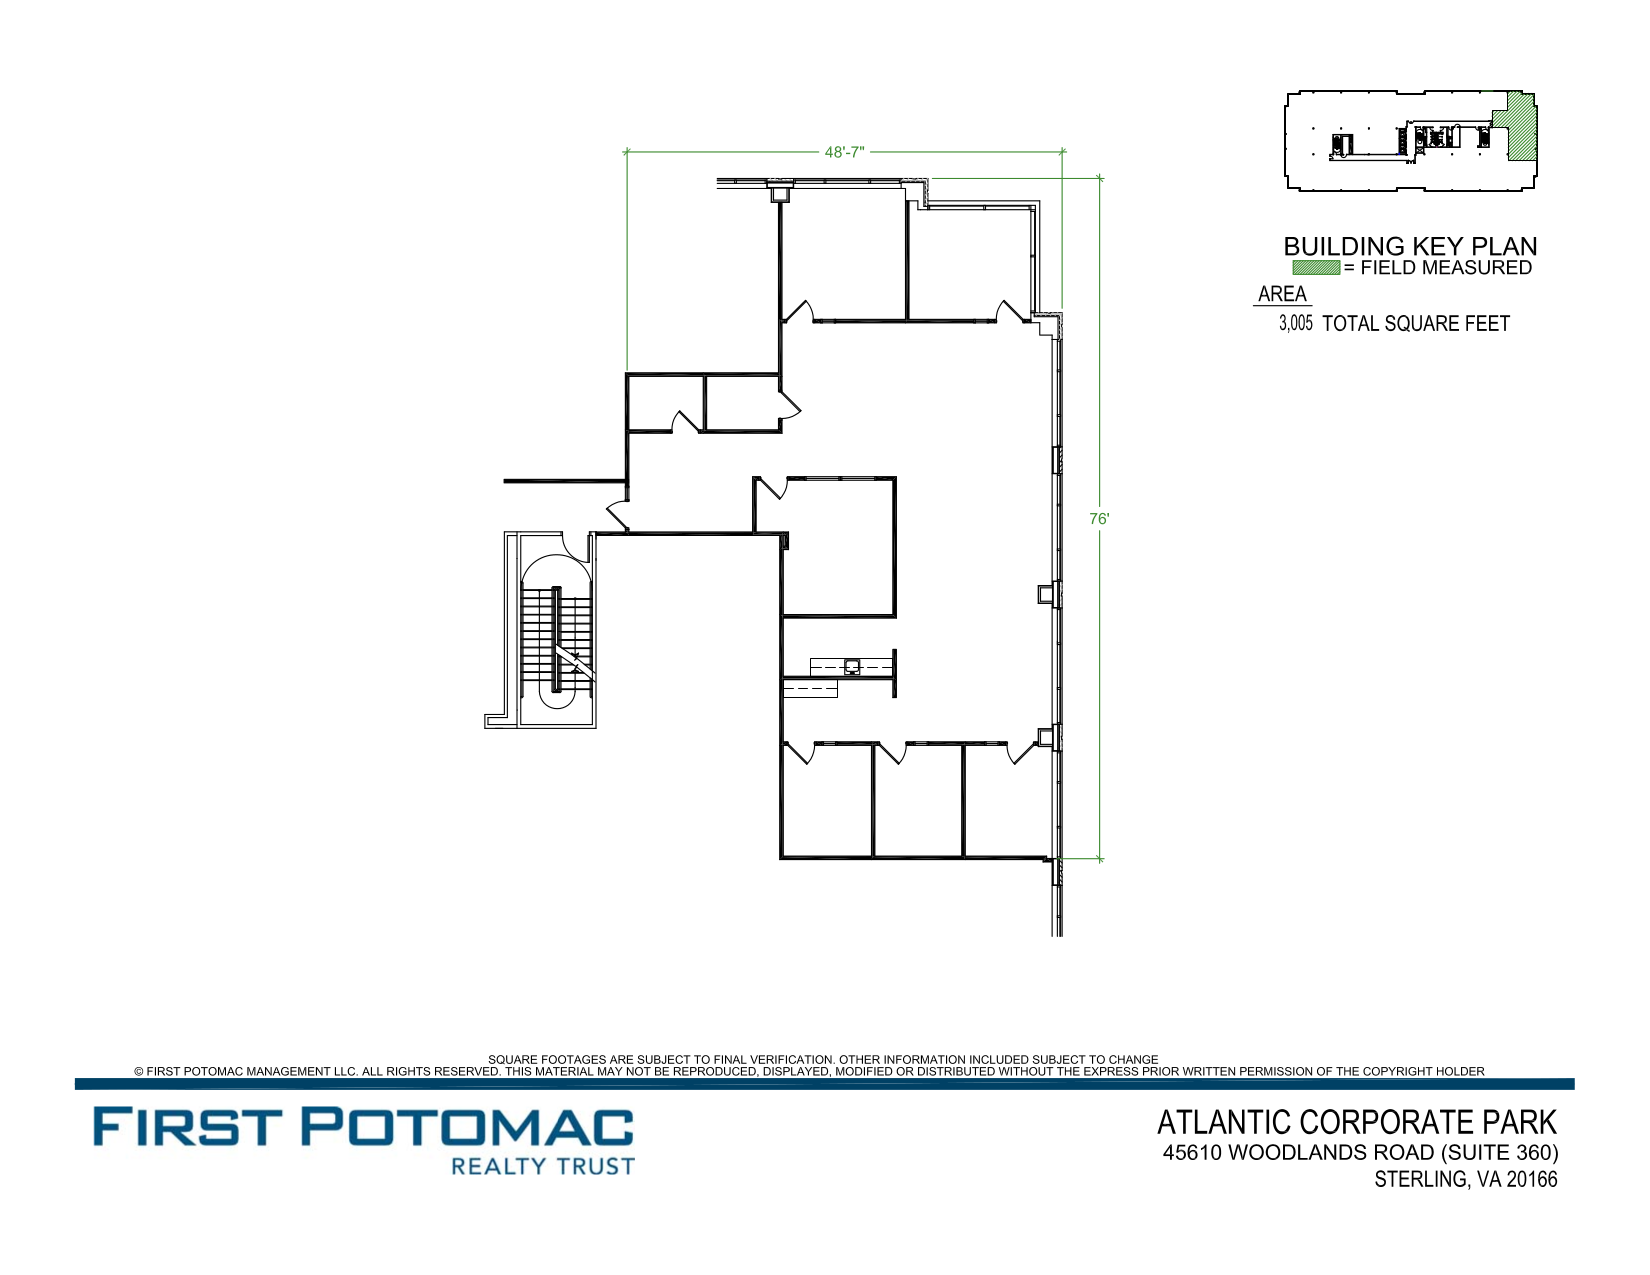 45610 woodland rd 3rd floor unit 360 vts for Vice president house floor plan